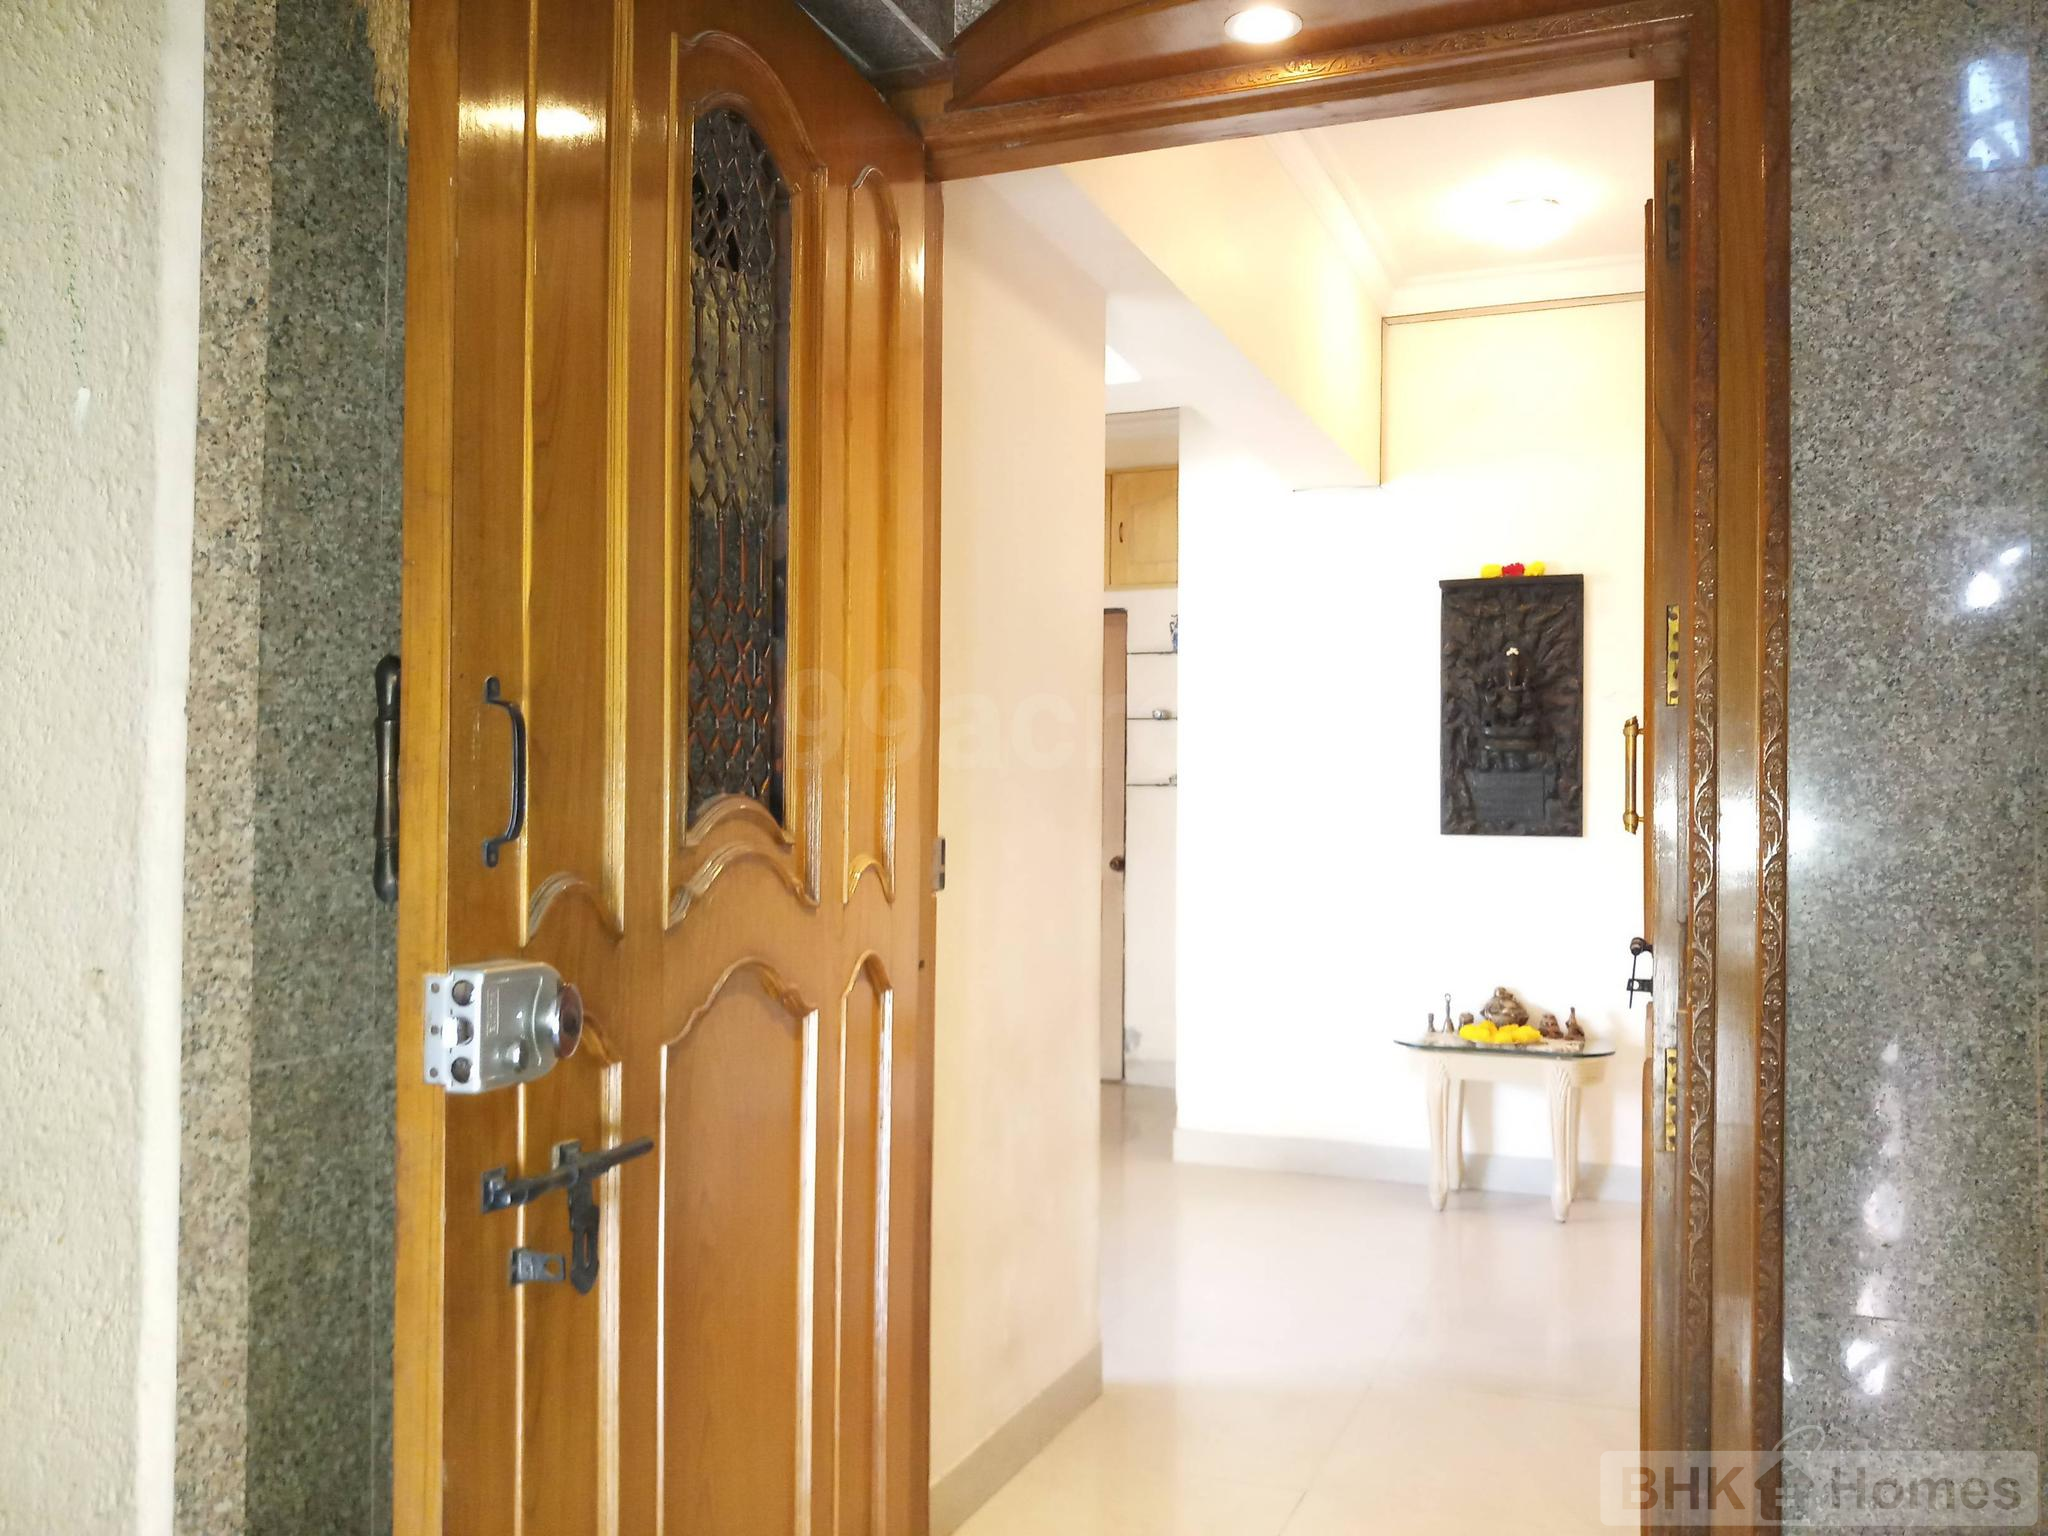 4 BHK  Apartment for Sale in  Malad